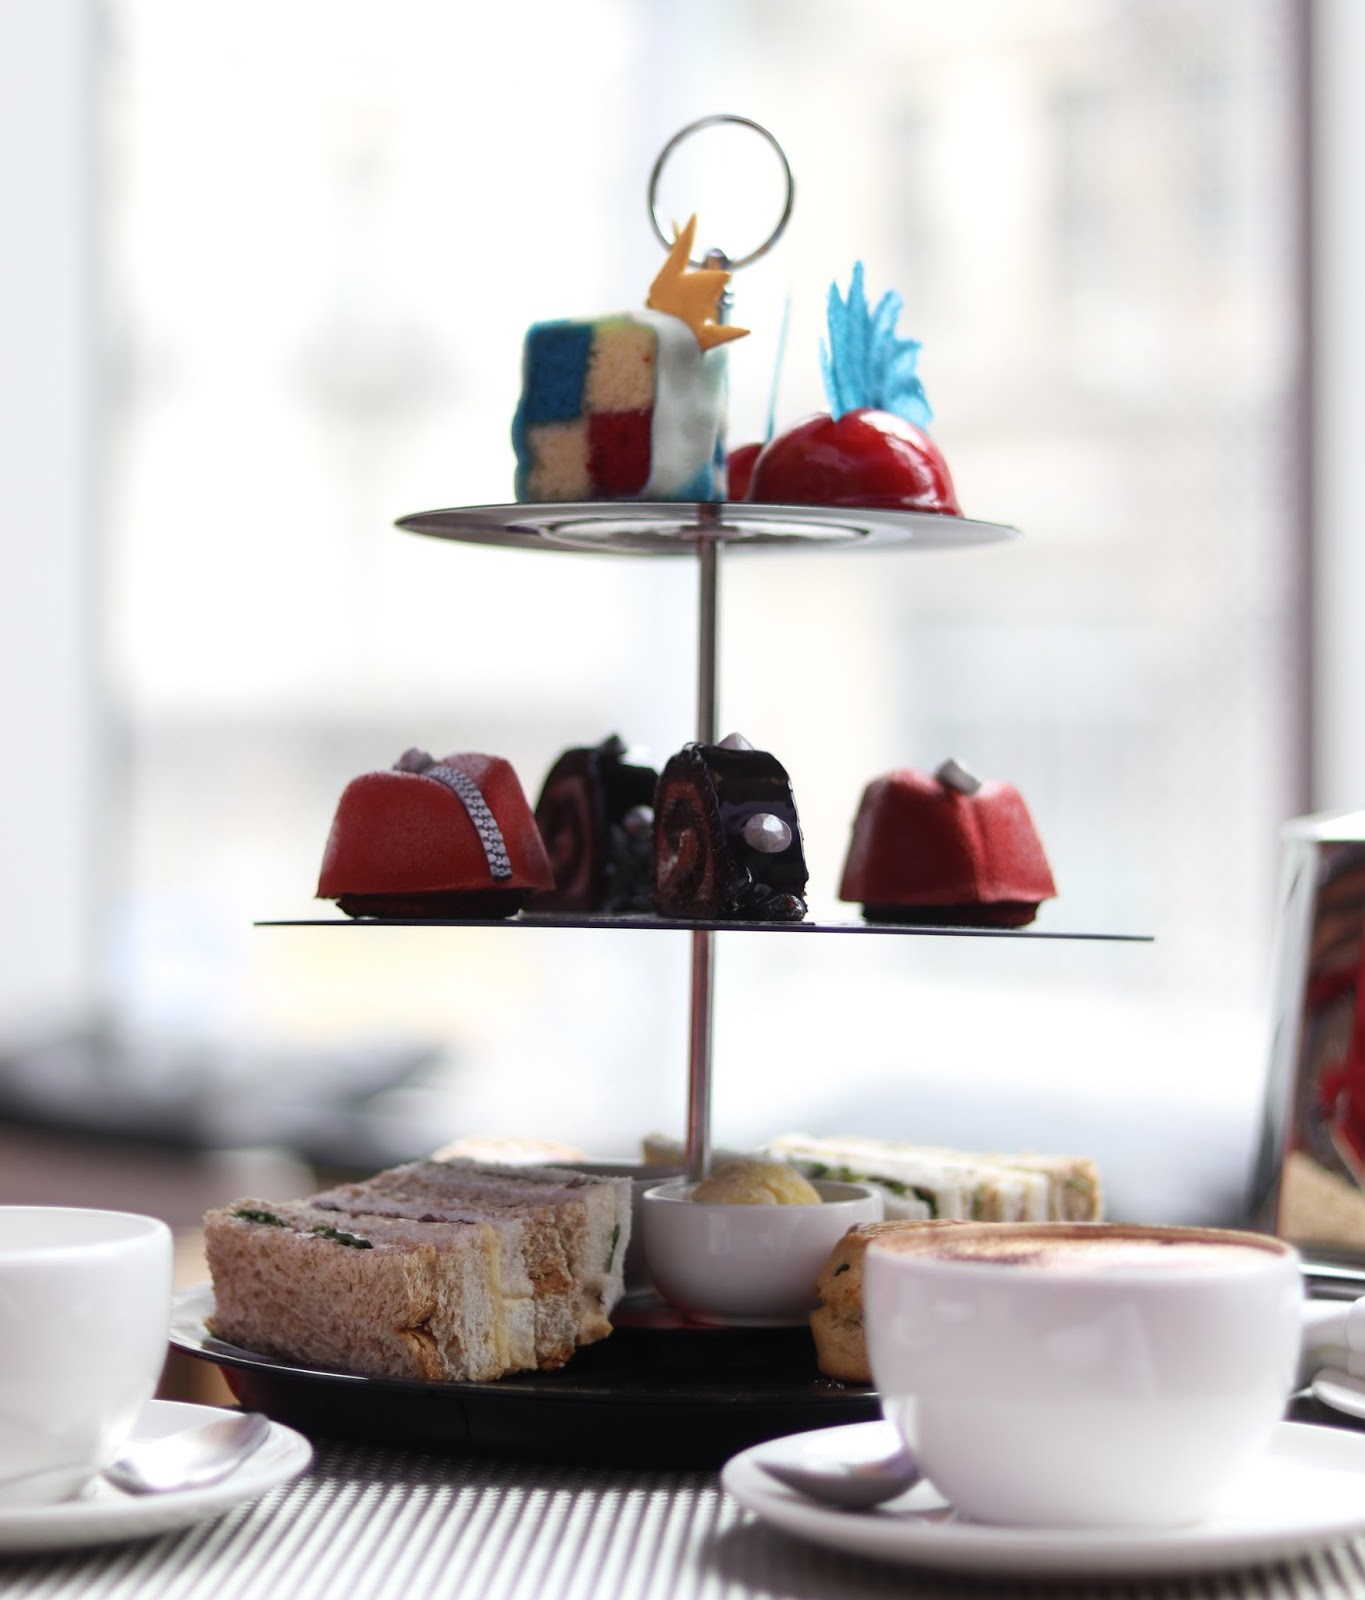 Anarch' Tea, Afternoon Tea at The W, Starwood Hotels